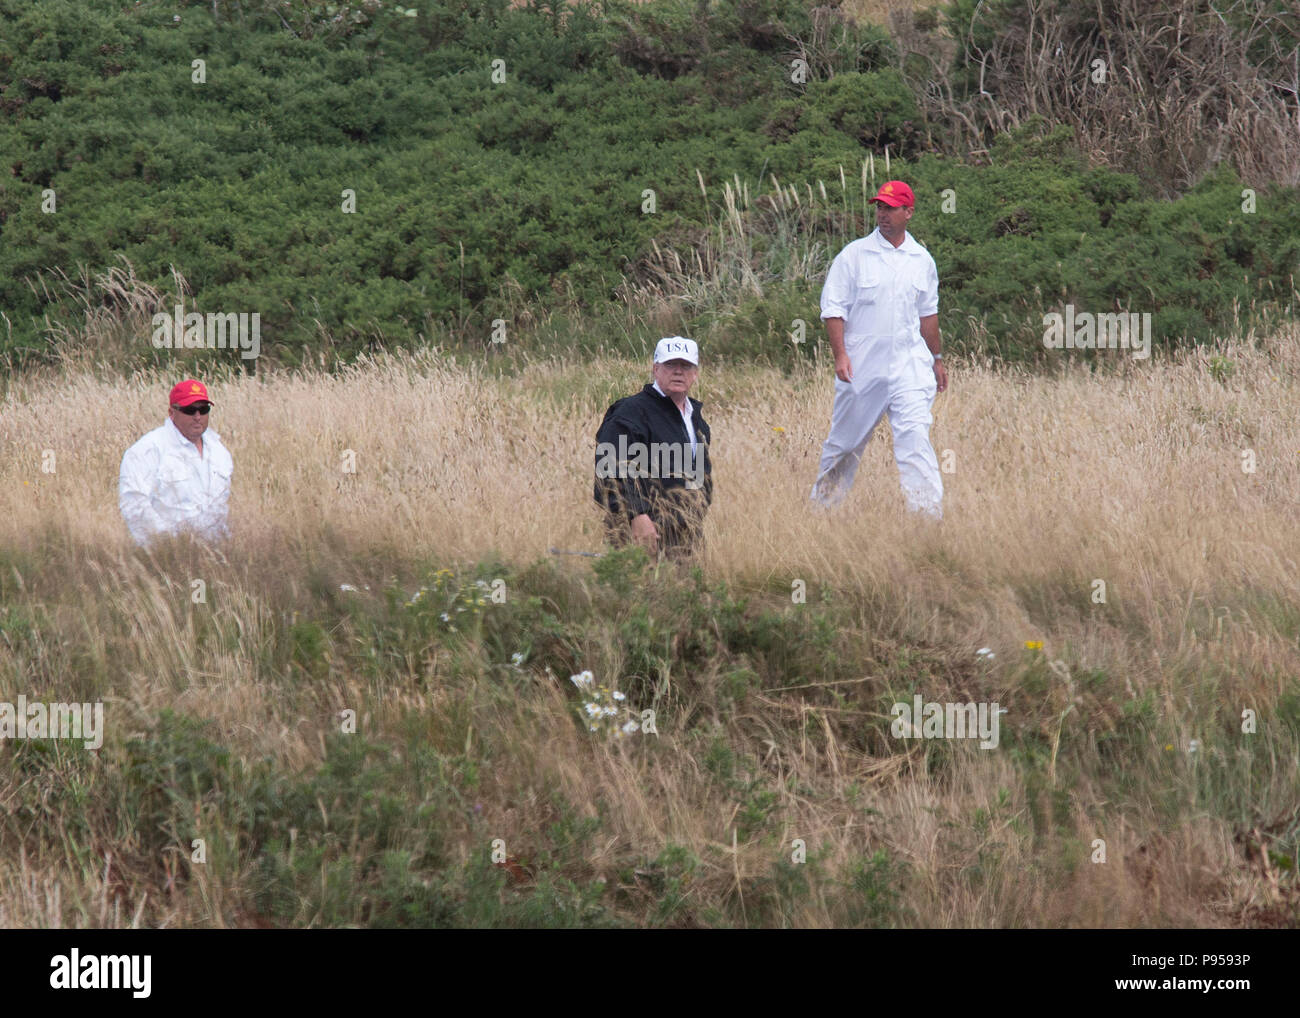 President Donald Trump at Trump Turnberry Golf resort in Ayrshire, Scotland, UK - Stock Image